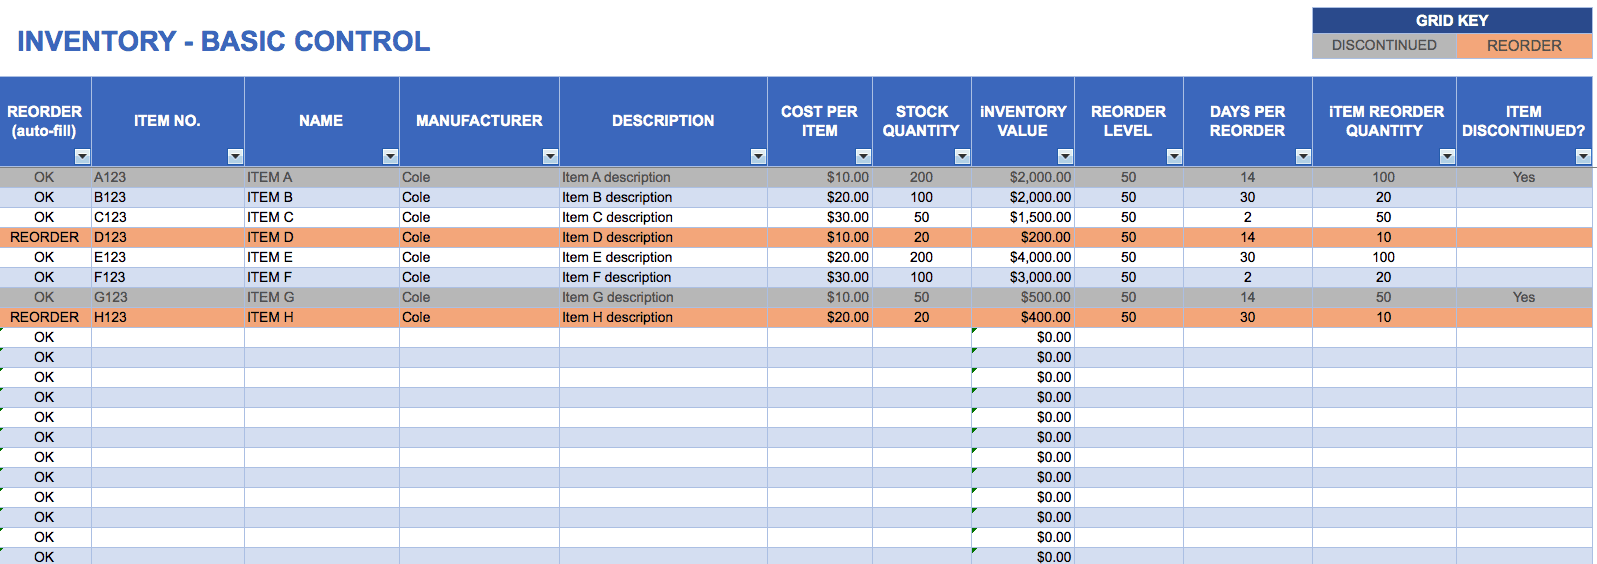 Worksheet Stock Control Template free excel inventory templates basic control template